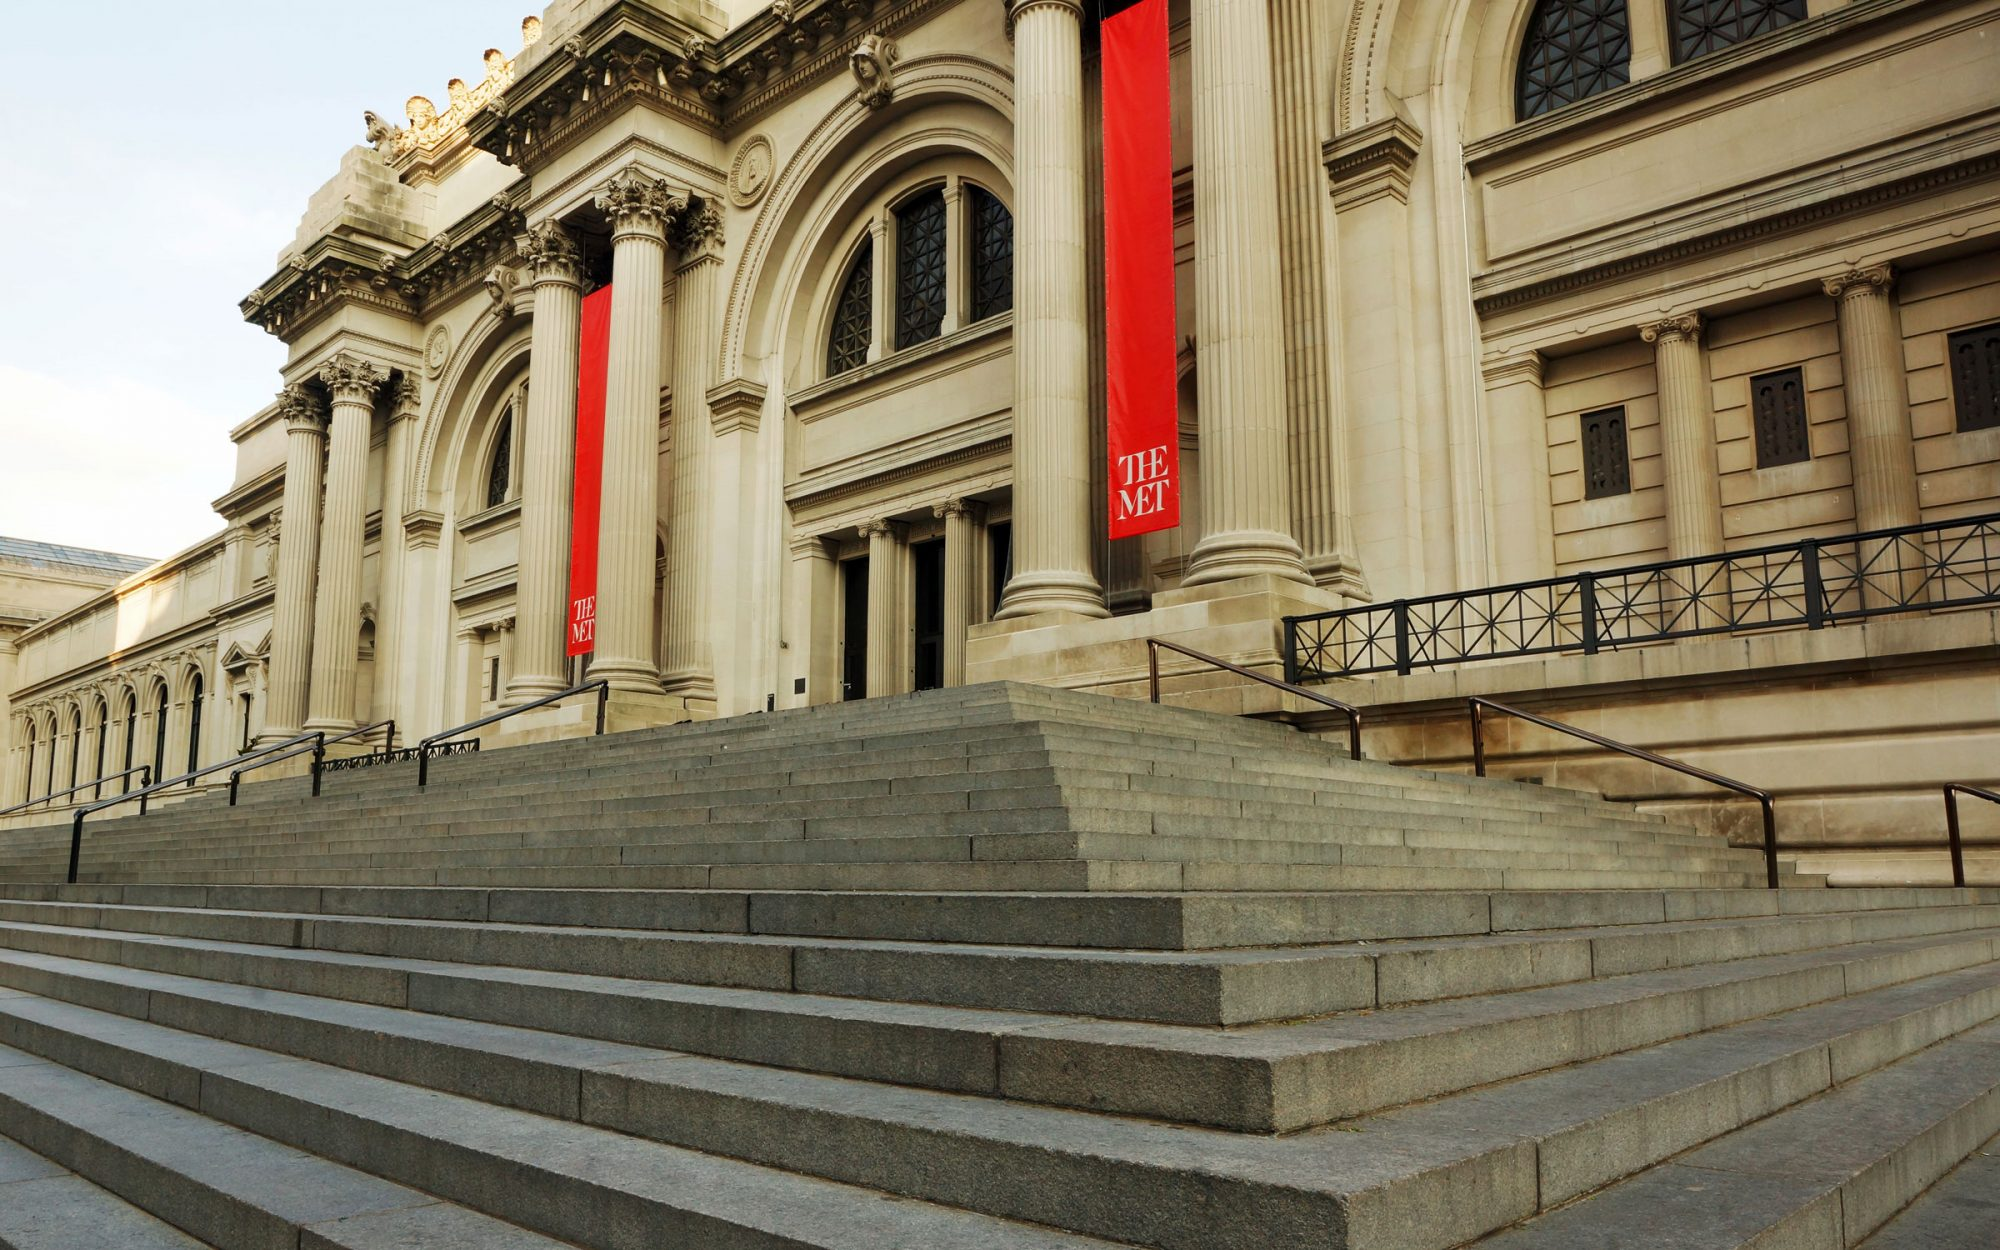 1.The Metropolitan Museum of Art in New York City